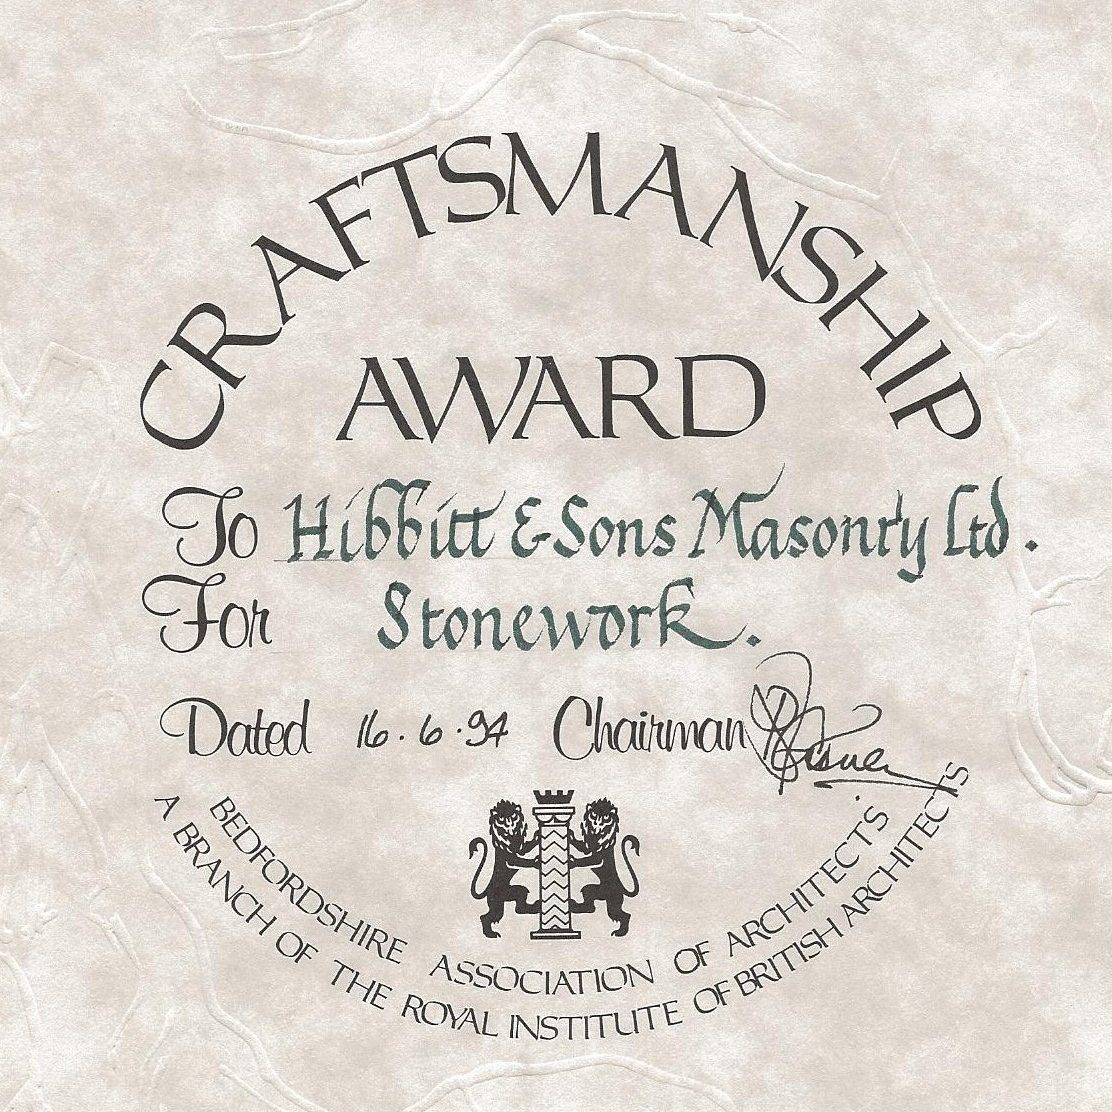 Craftsmanship award 1994 Hibbitt & Sons 1 (2)